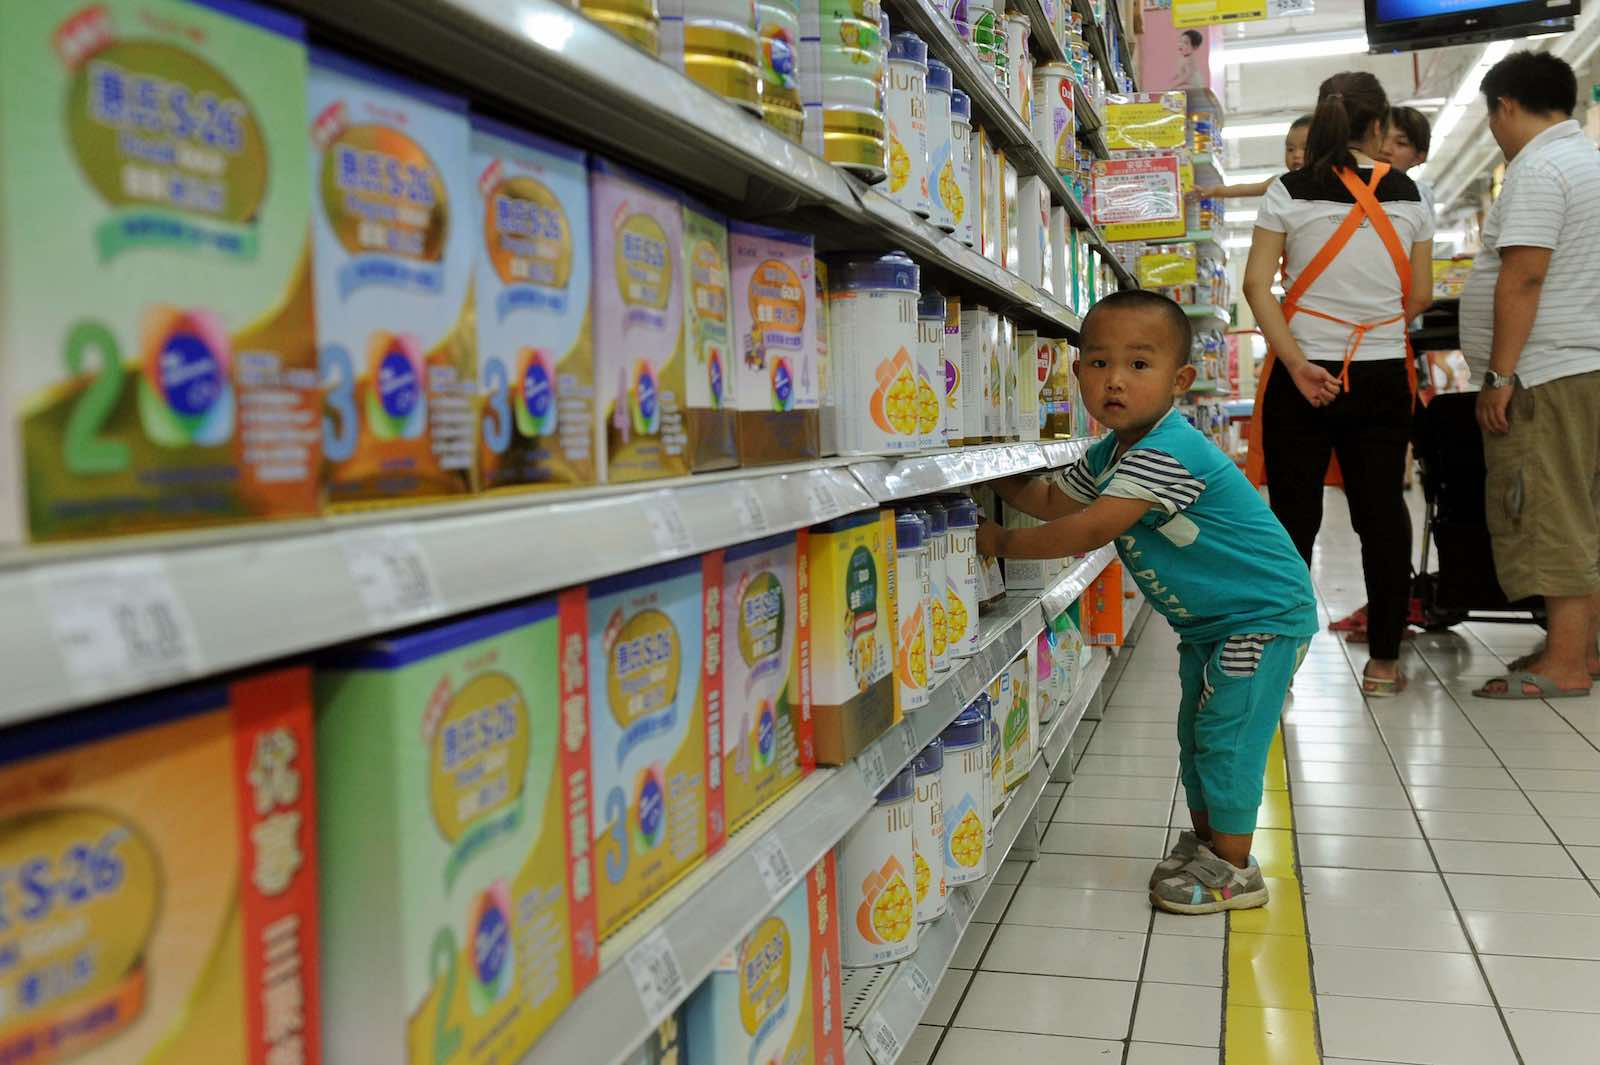 15 million babies born in China each year take some feeding (Photo: STR/AFP/Getty)